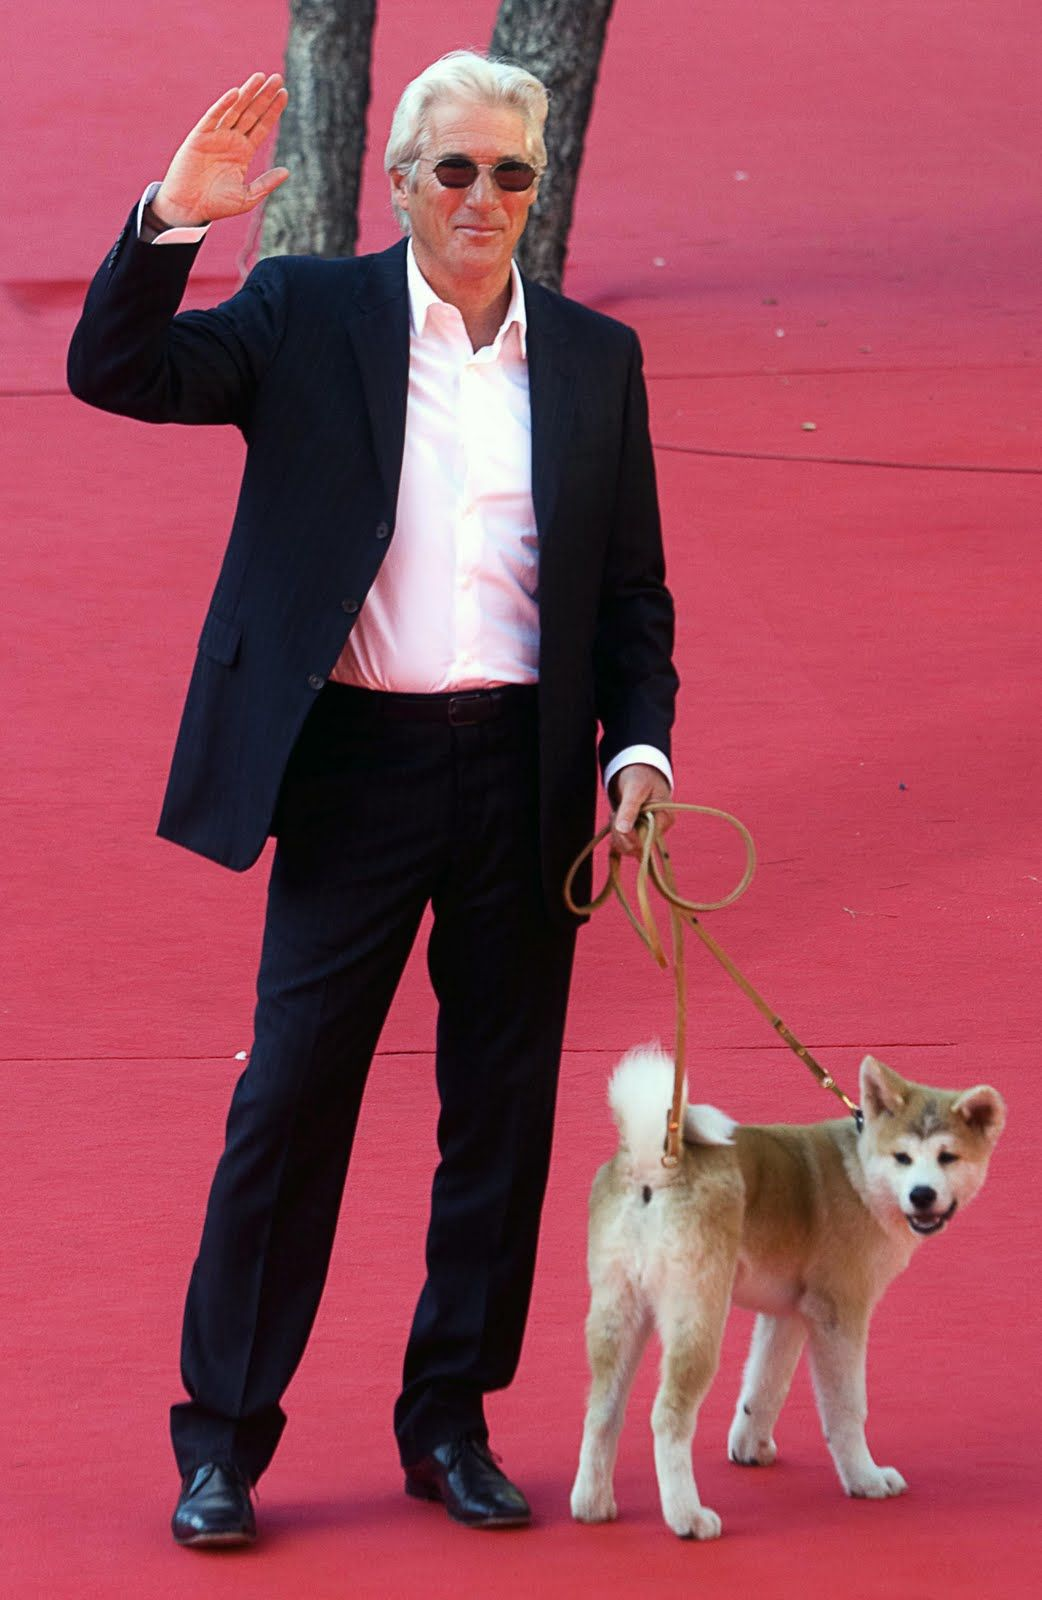 Hachiko (With images) Richard gere, An officer and a